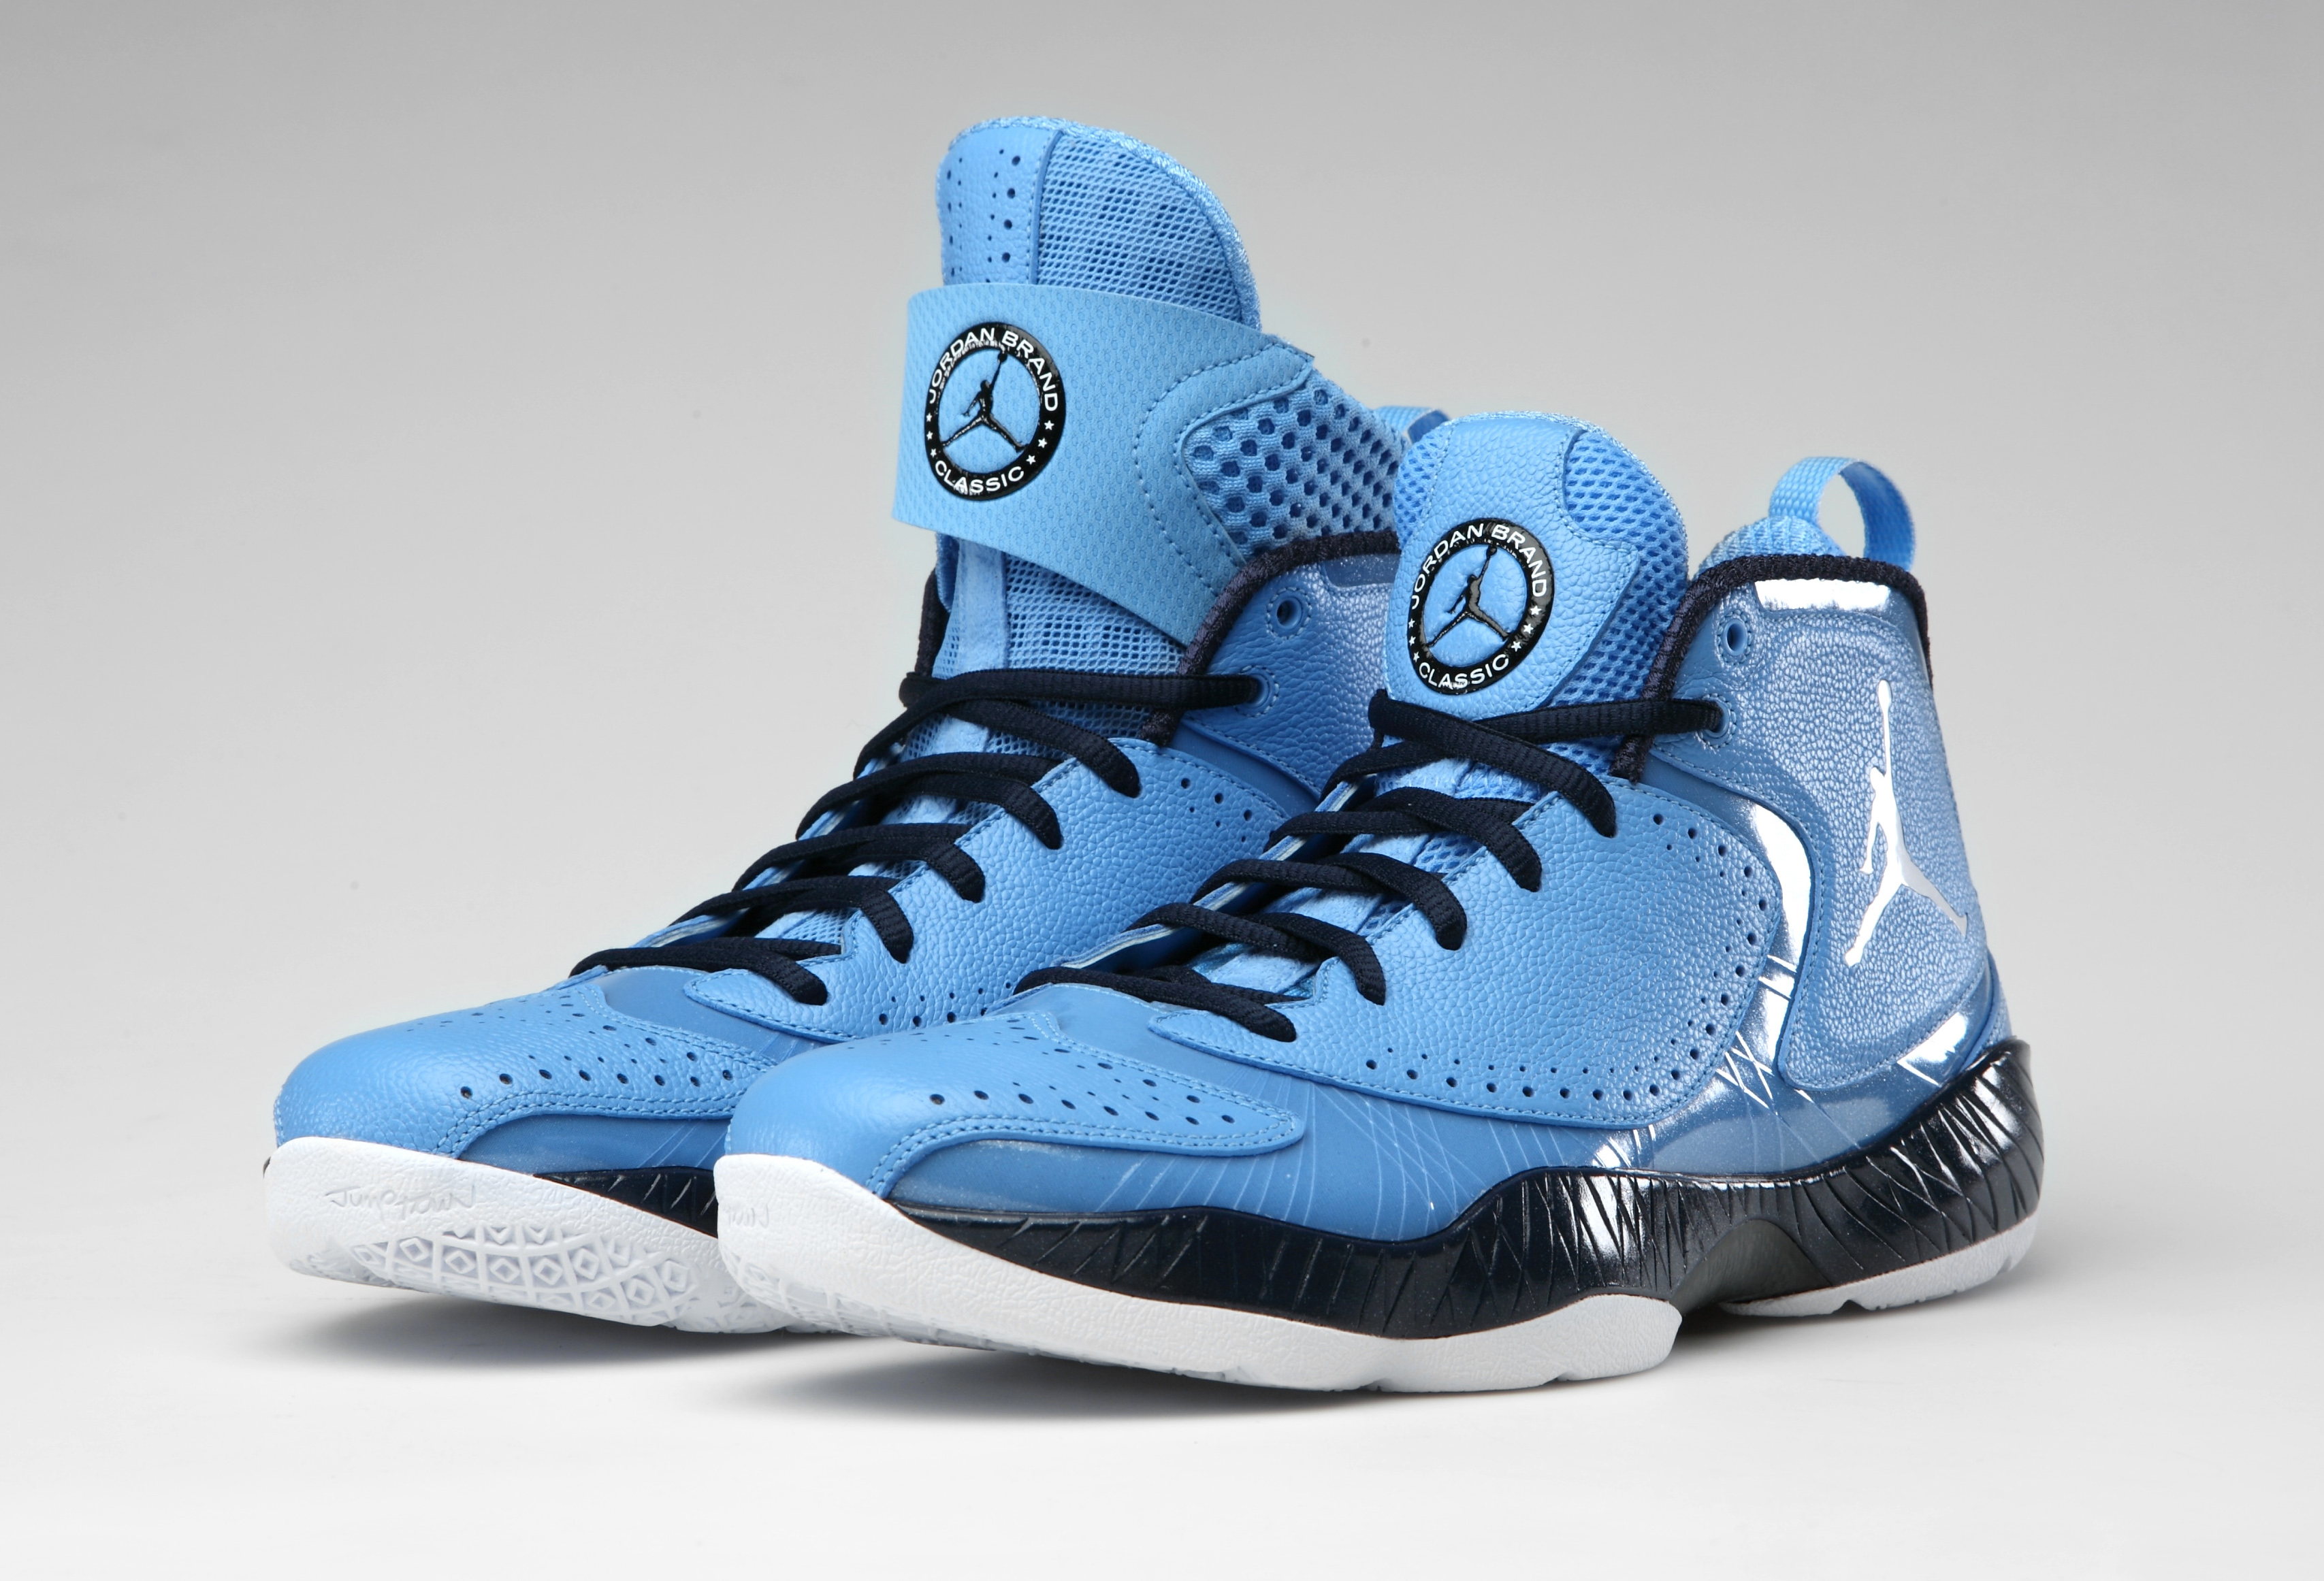 air jordan 2012 university blue for sale